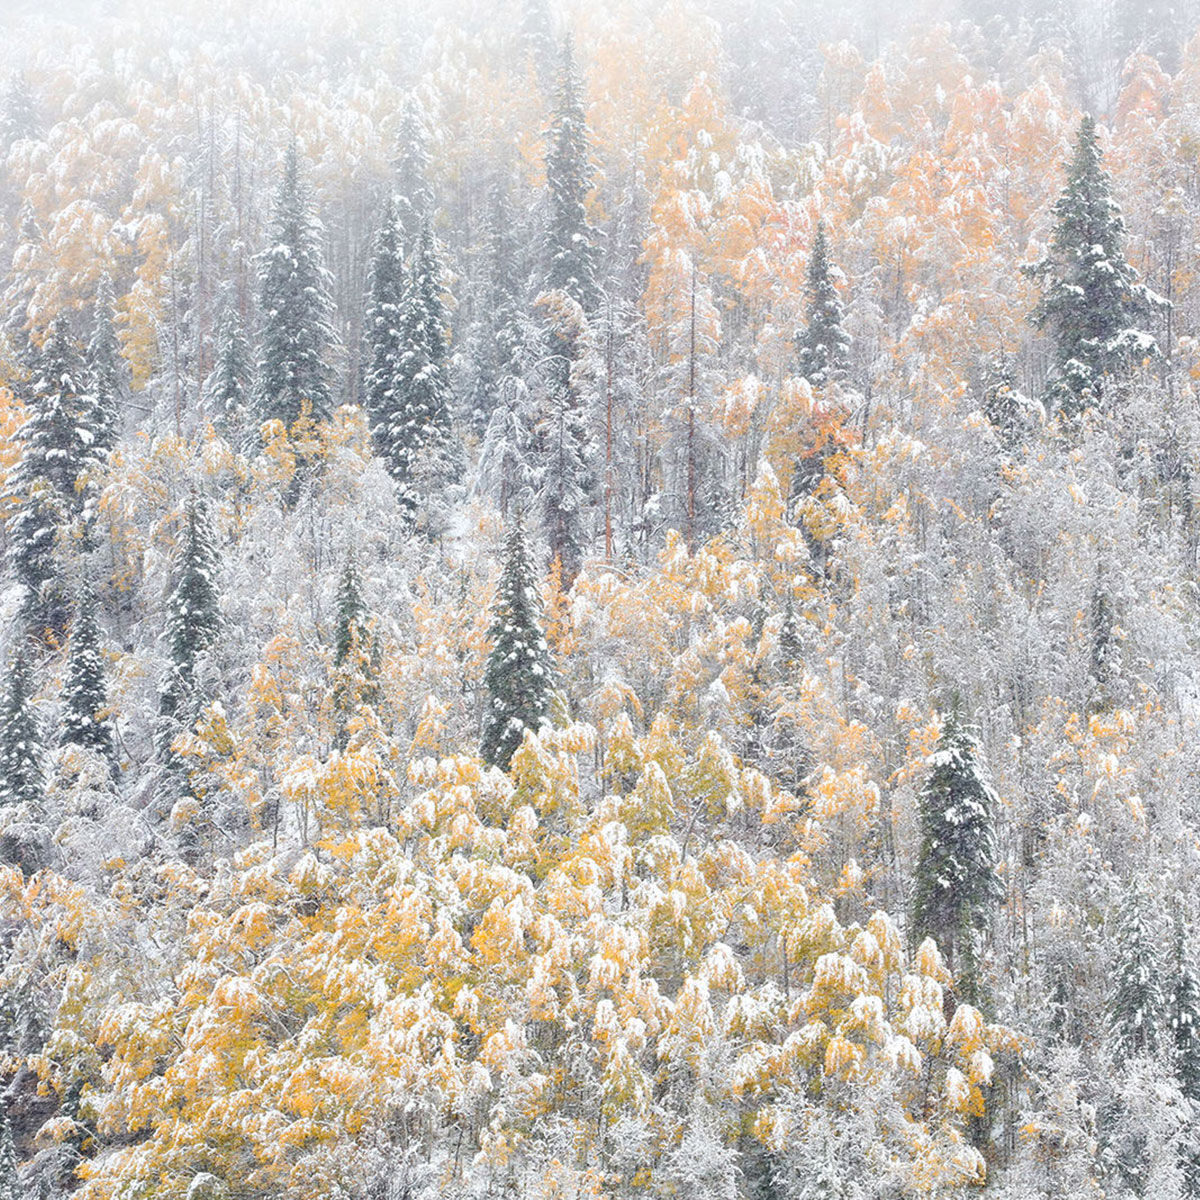 A photograph of snow covered trees during autumn in Vail, Colorado titled Winters Vail.